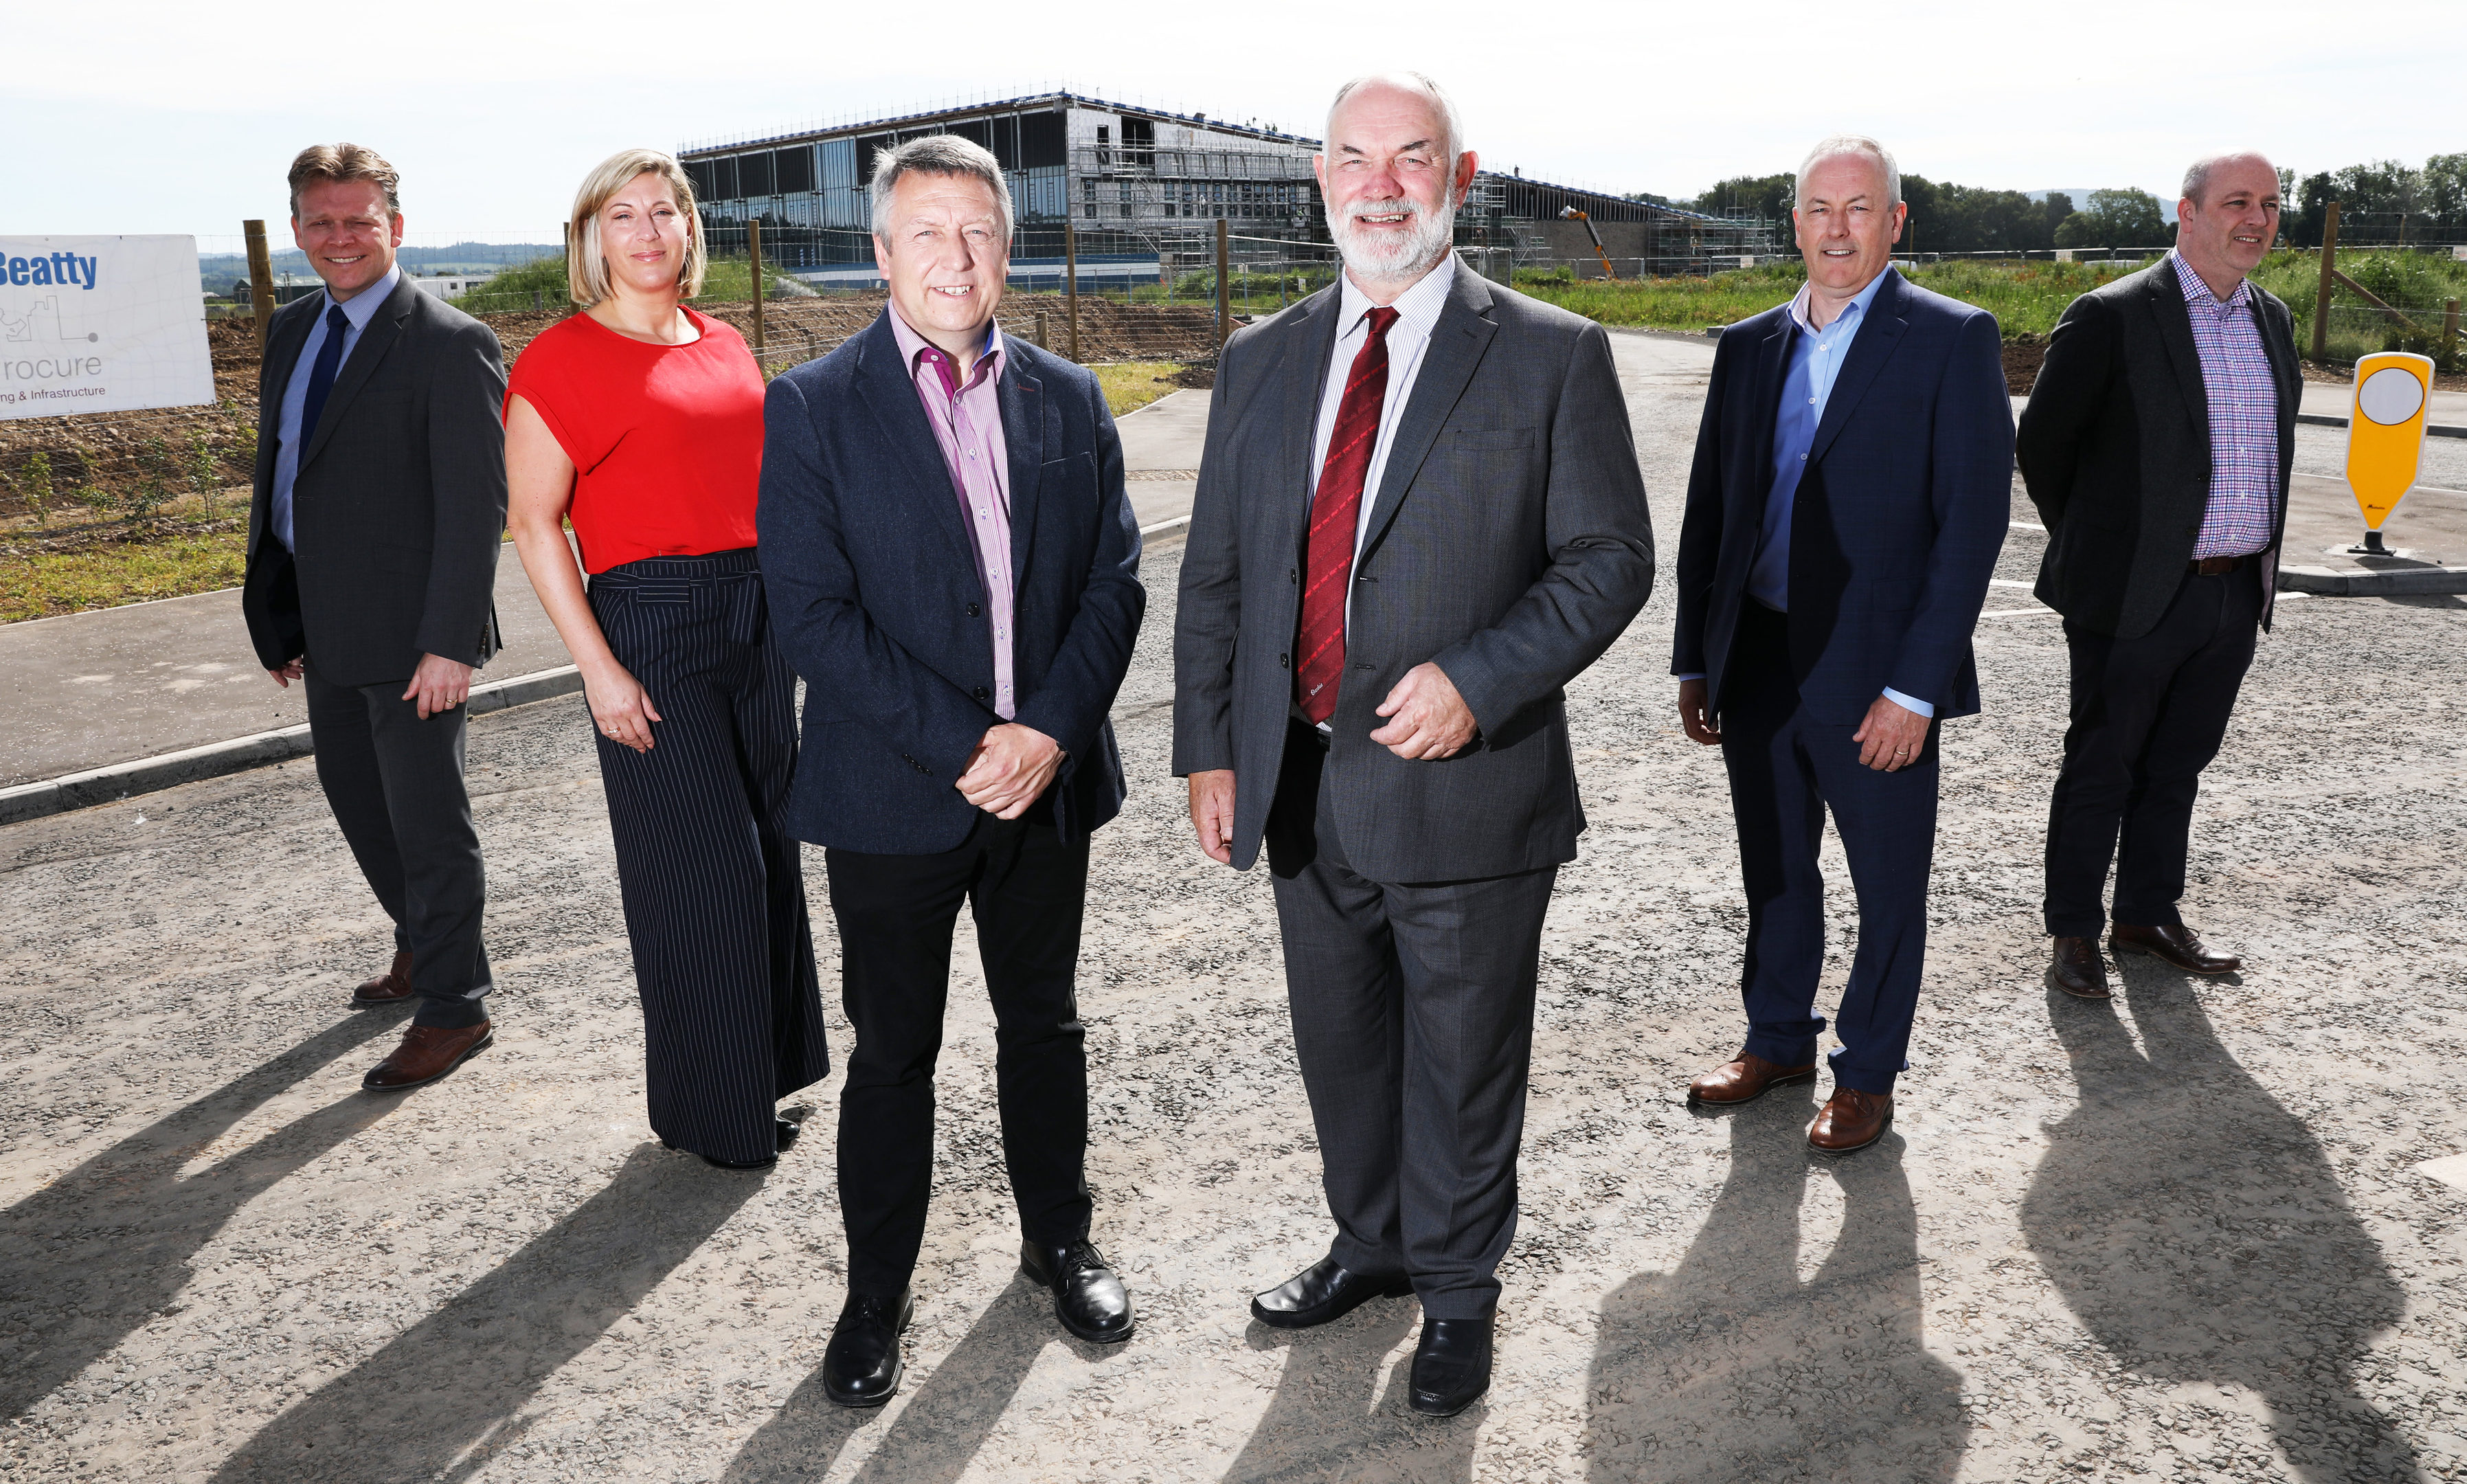 The official opening of the new link road to Bertha Park.  Picture shows; Bertha Park Head Teacher Stuart Clyde, Victoria Bramini from Scape,  Councillor Angus Forbes, Council Leader Murray Lyle, Hector MacAulay and Graeme Dickie from Balfour Beatty on the new road link beside the new school.